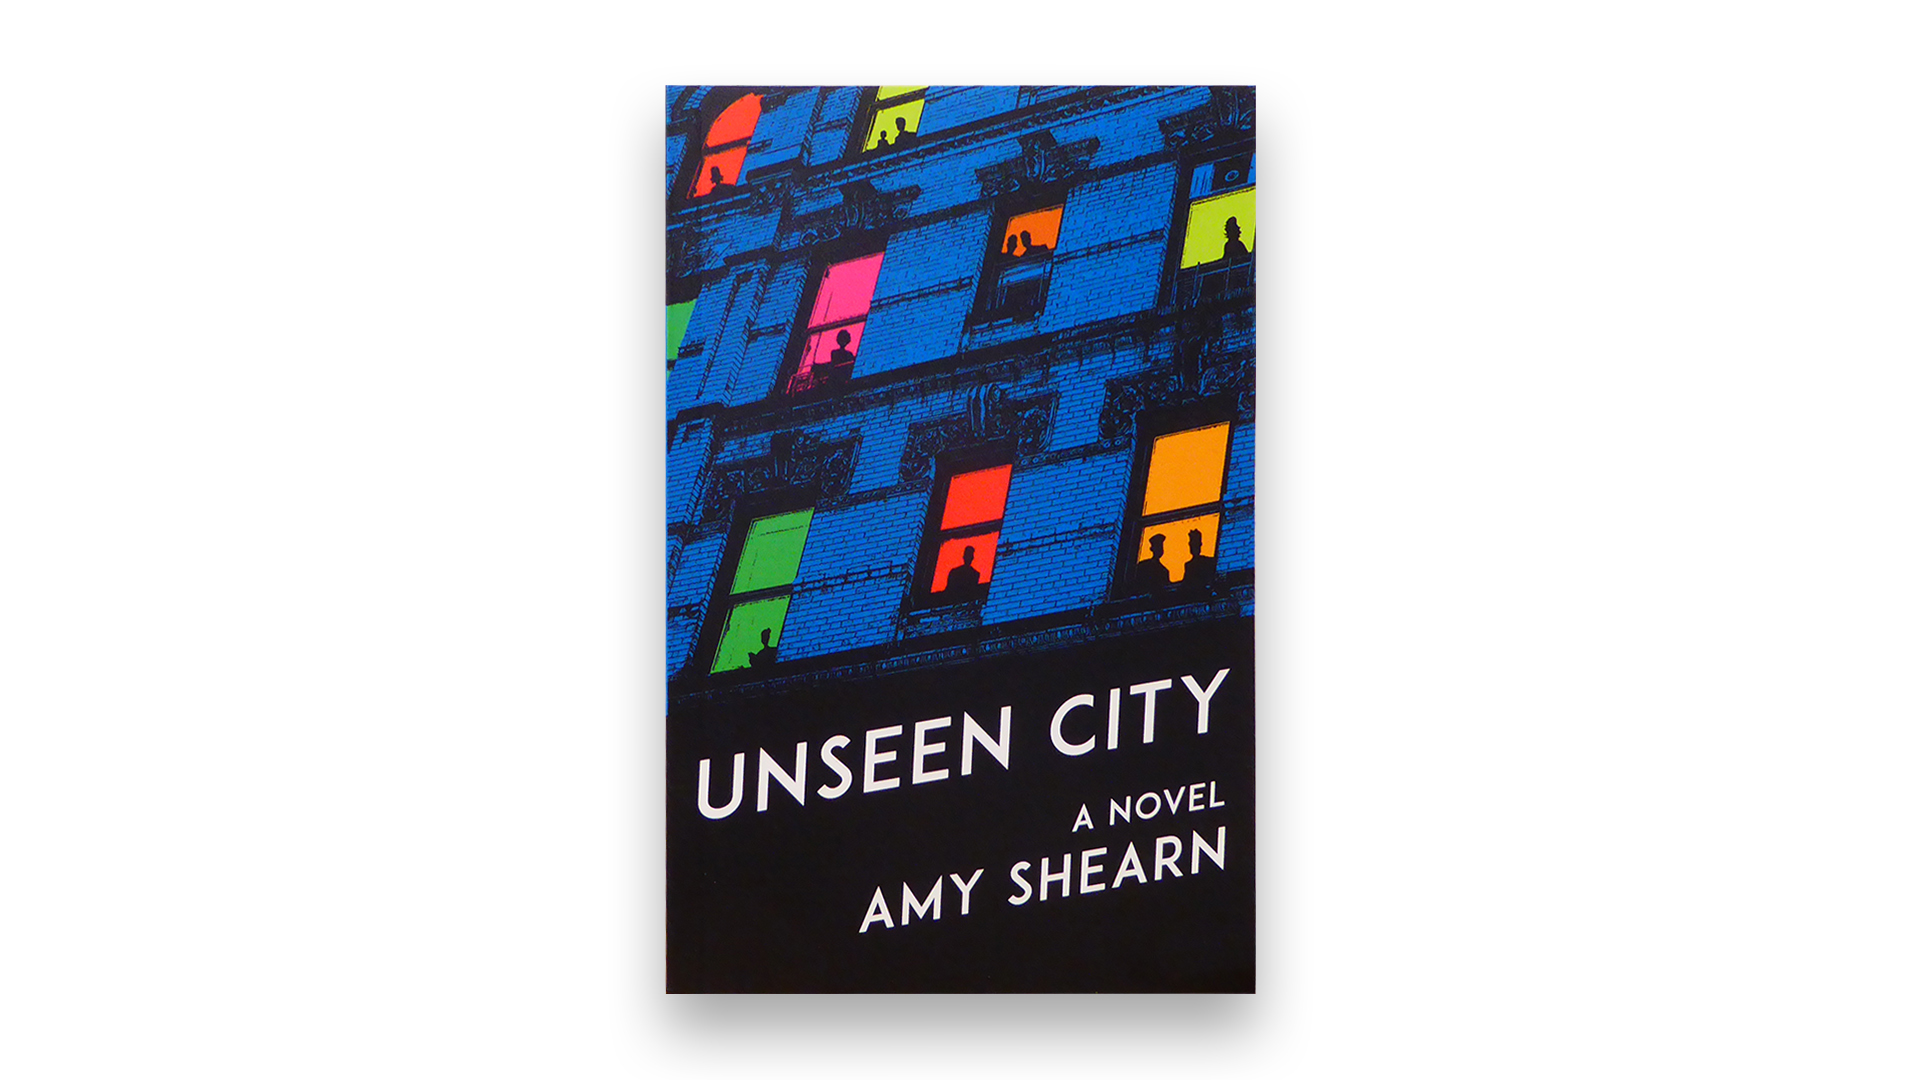 https://redhenpress.org/collections/fall-2020/products/unseen-city-by-amy-shearn